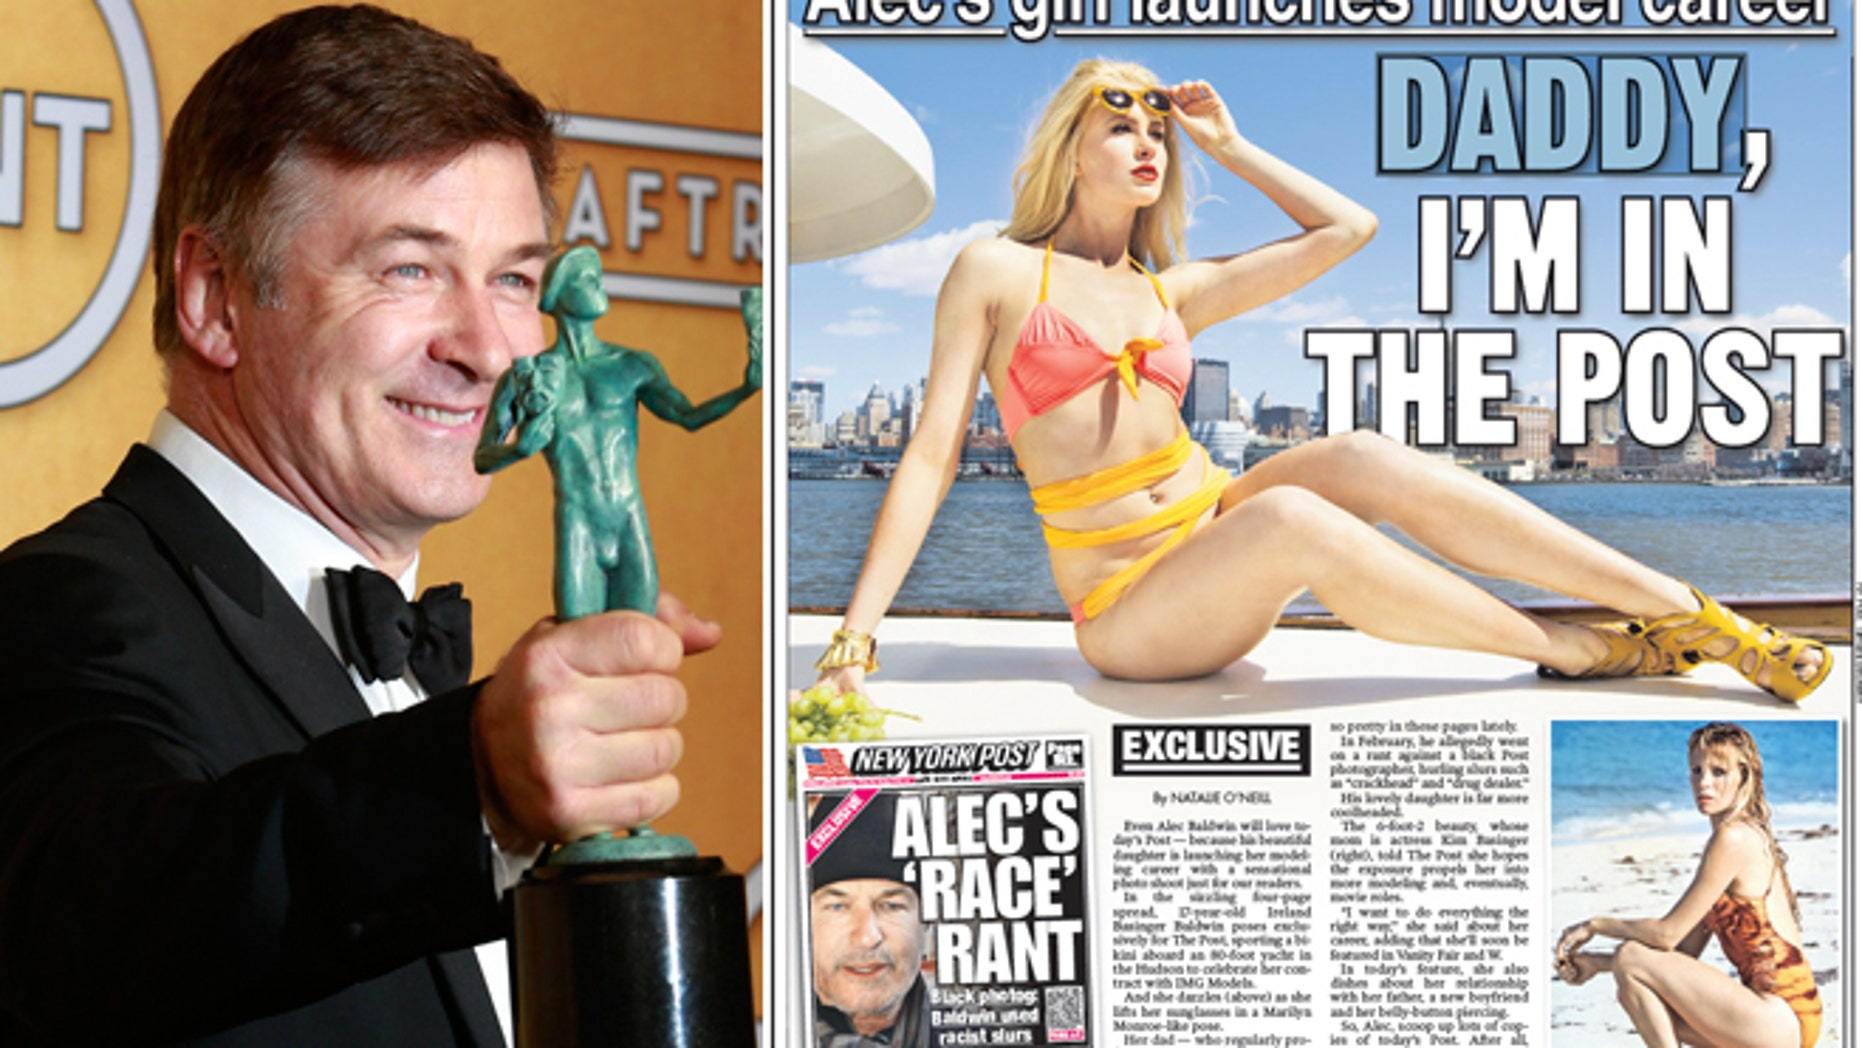 """Alec Baldwin holds his award for outstanding performance by a male actor in a comedy series for his role in """"30 Rock"""" in January 2013; Ireland Baldwin poses in a photo shoot for The New York Post in April 2013."""